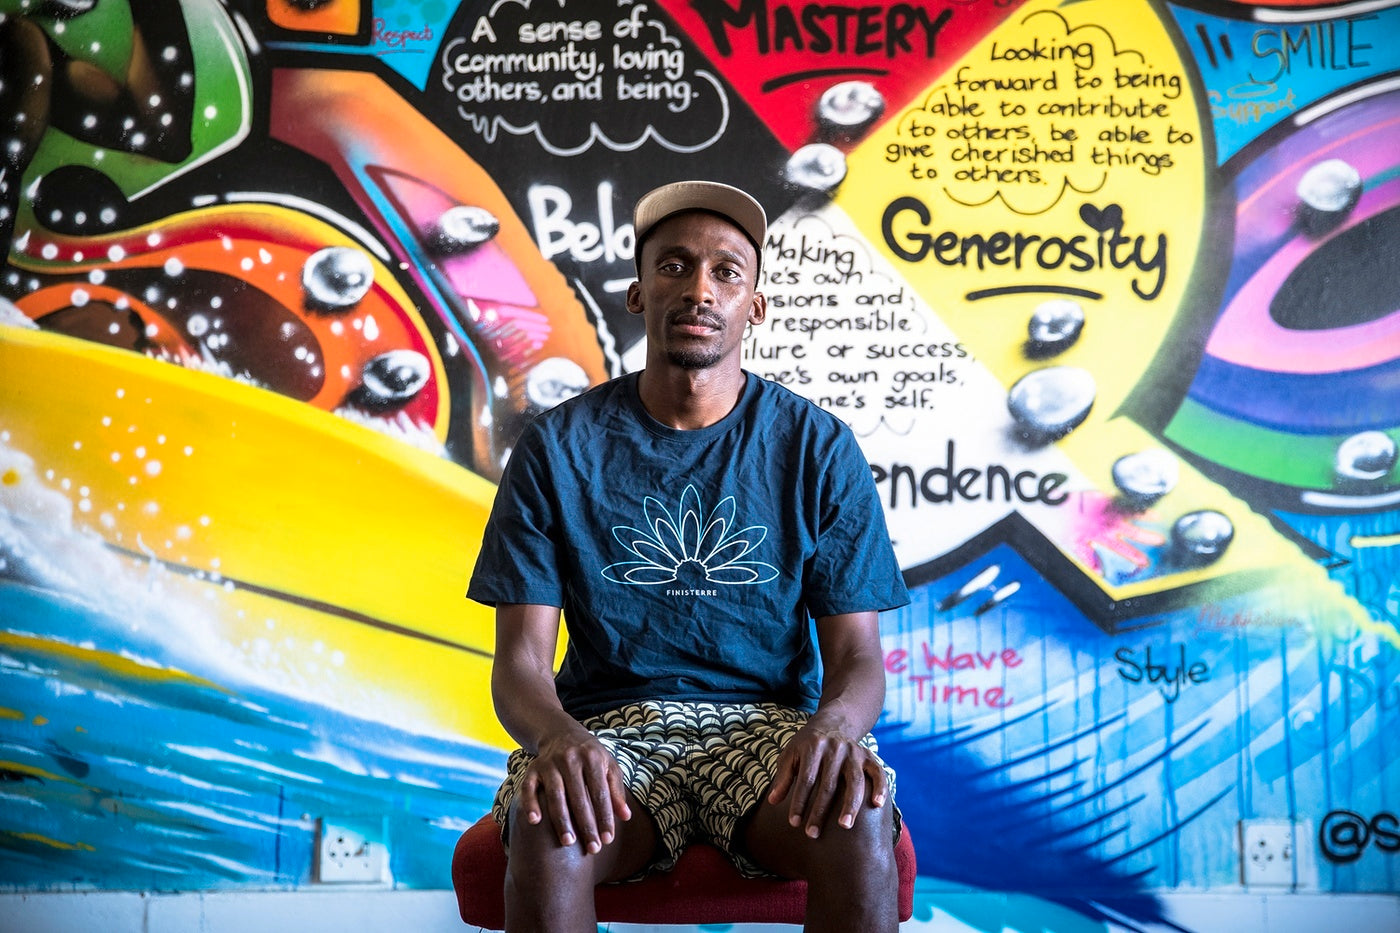 Finisterre Ambassador Apish Tshetsha at the Waves for Change HQ in Cape Town